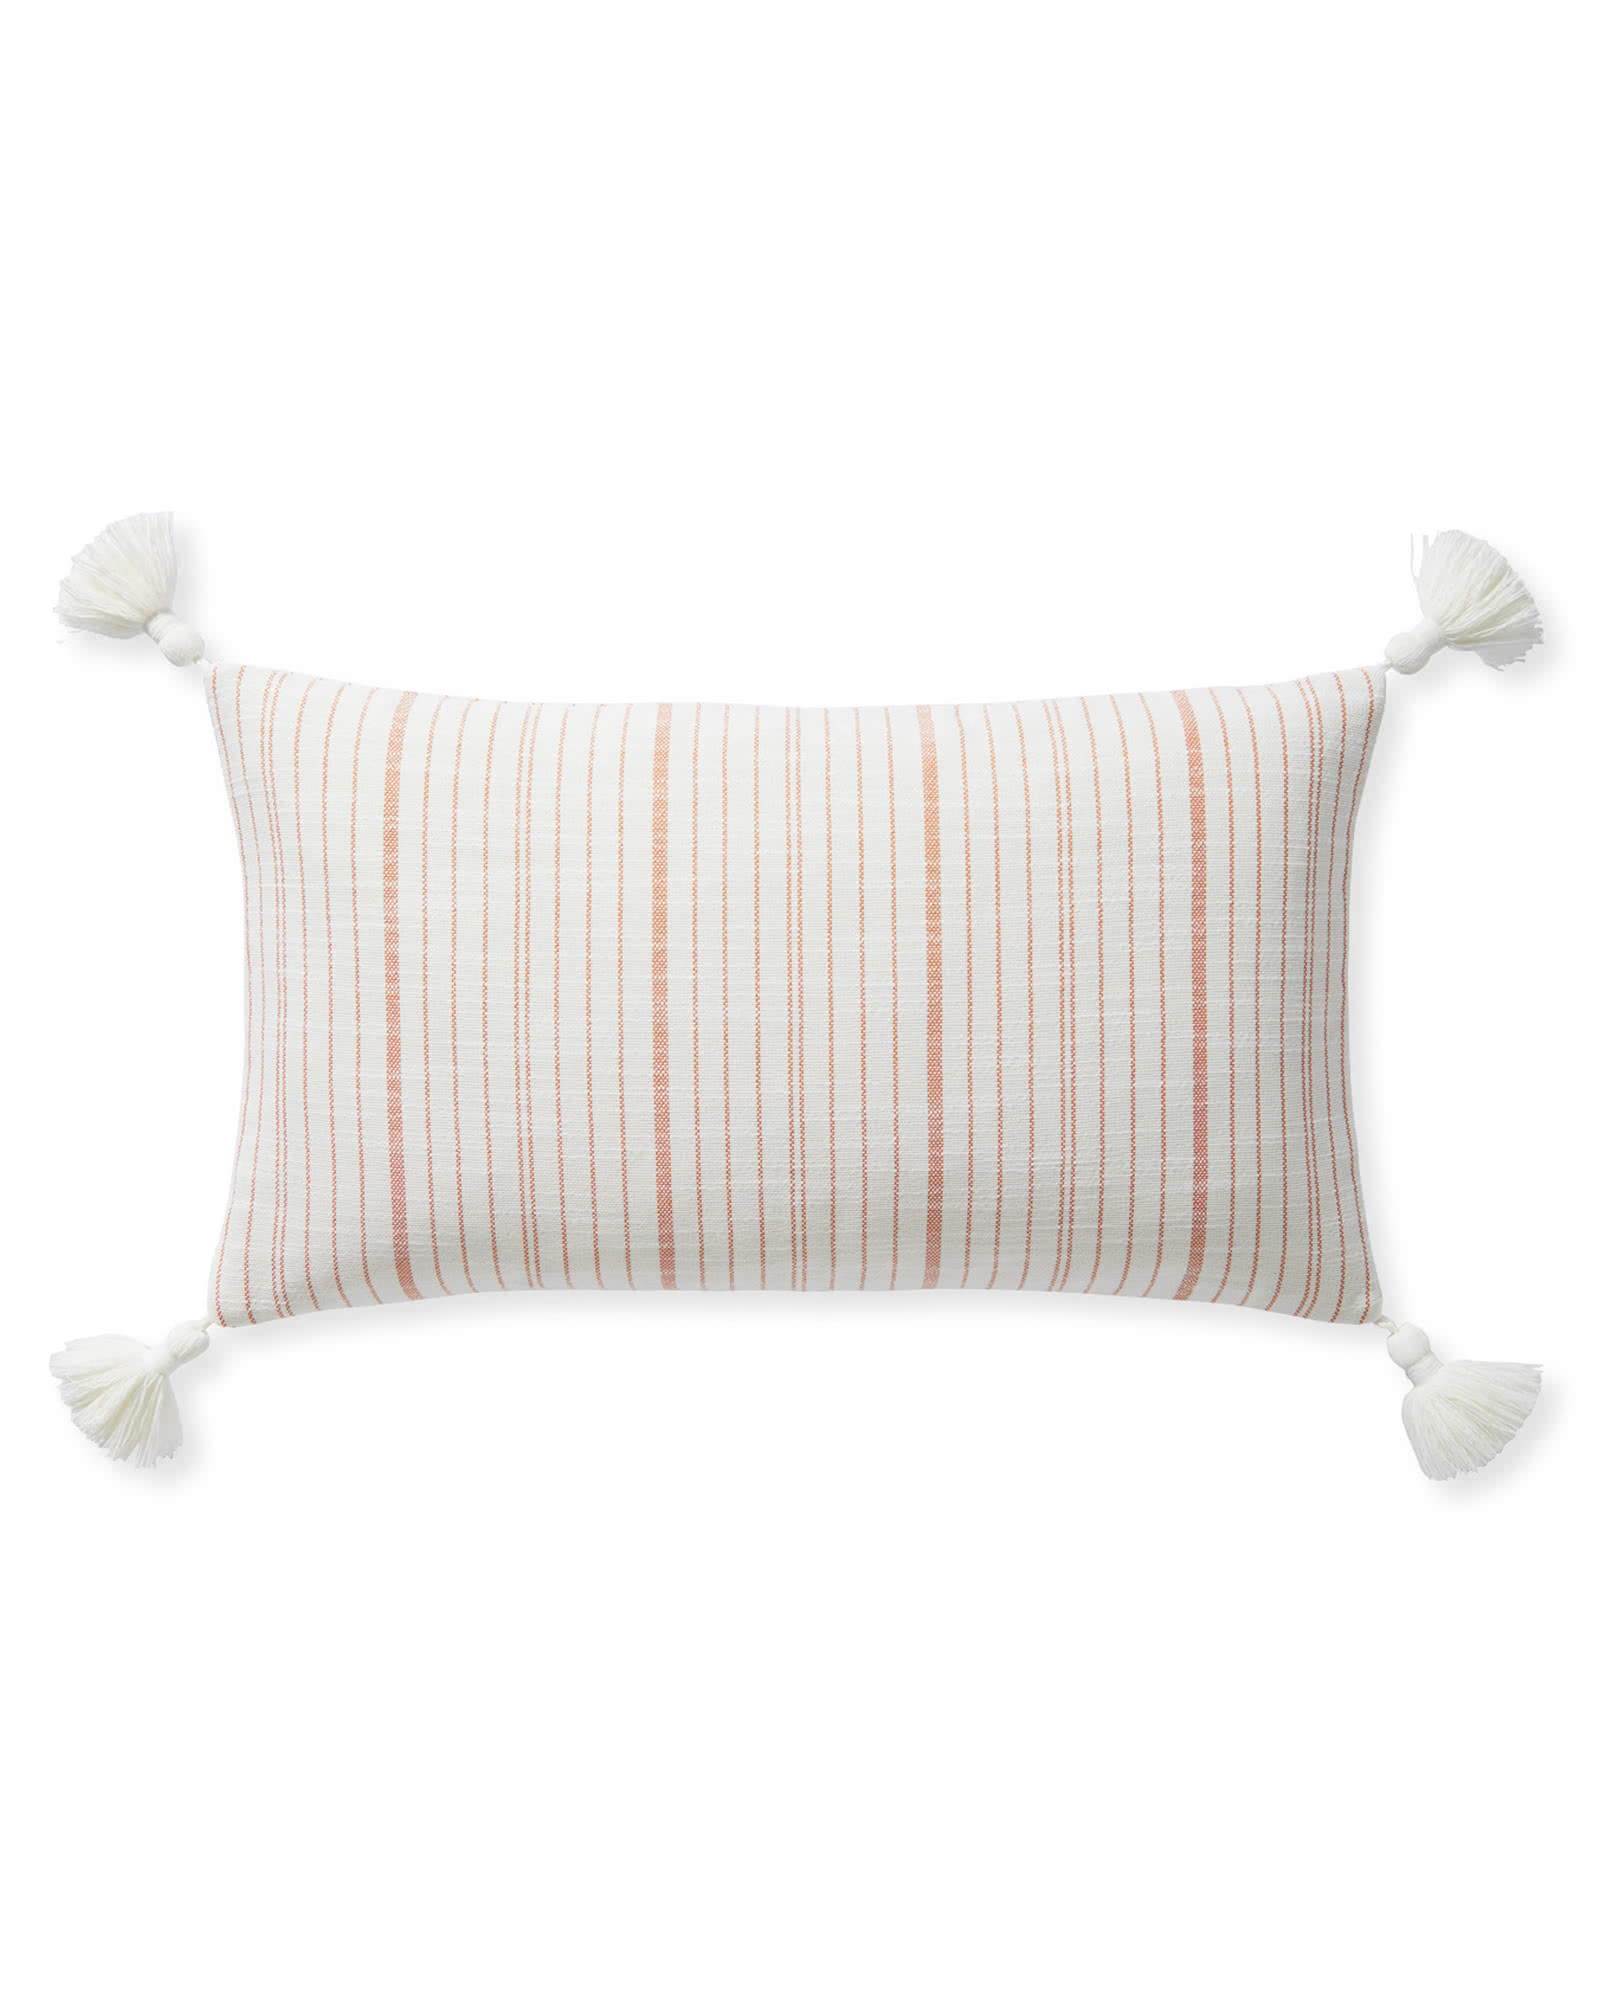 Surf Stripe Pillow Cover - Orange,